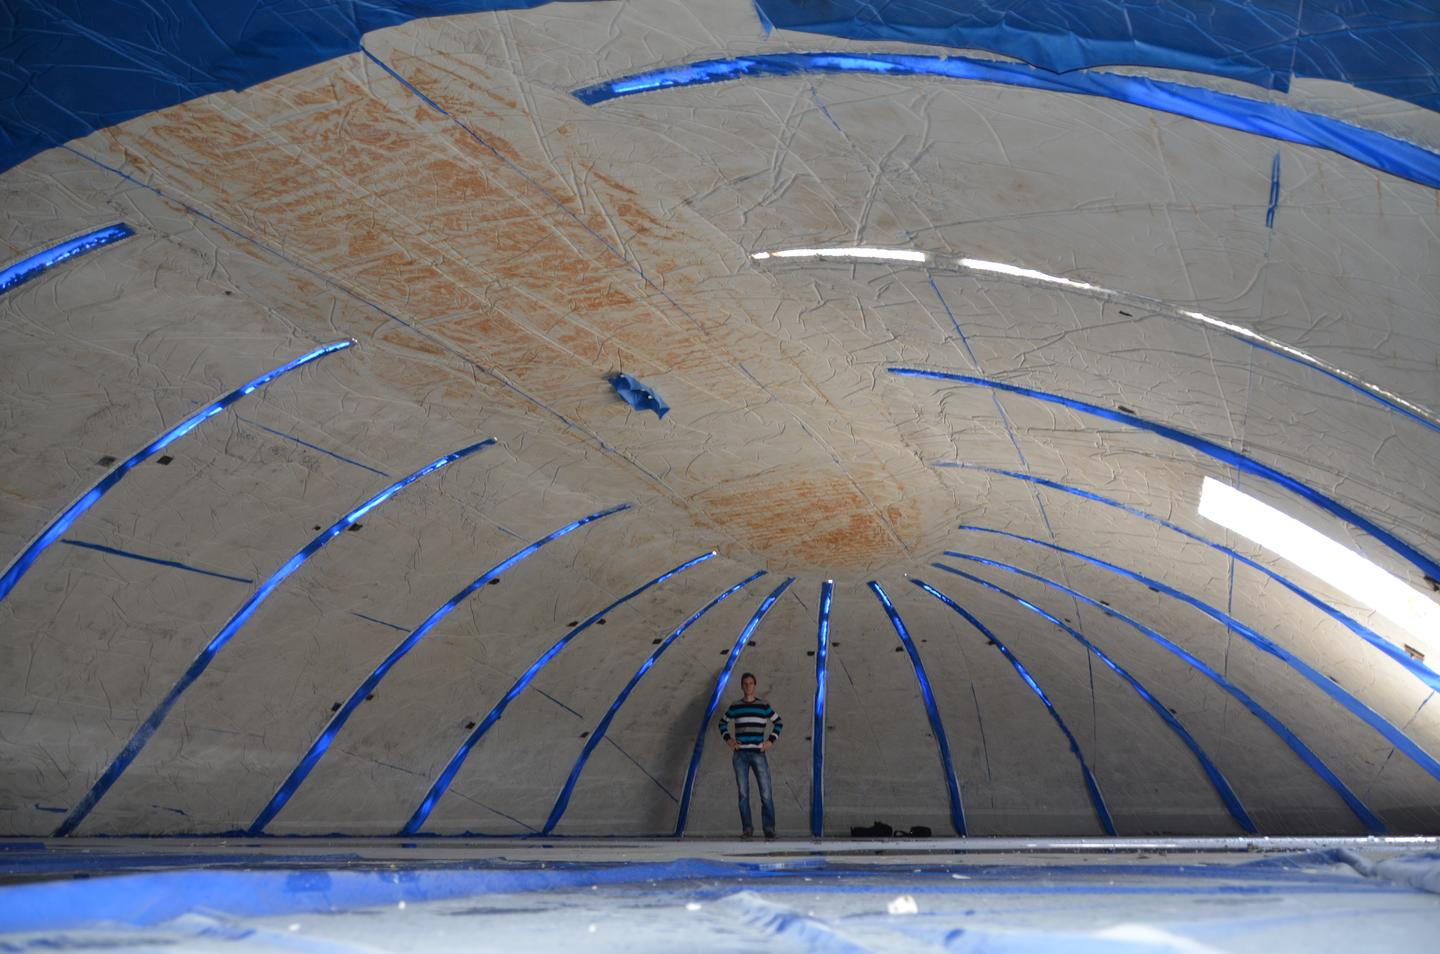 Inside a test dome built using the pneumatic wedge method